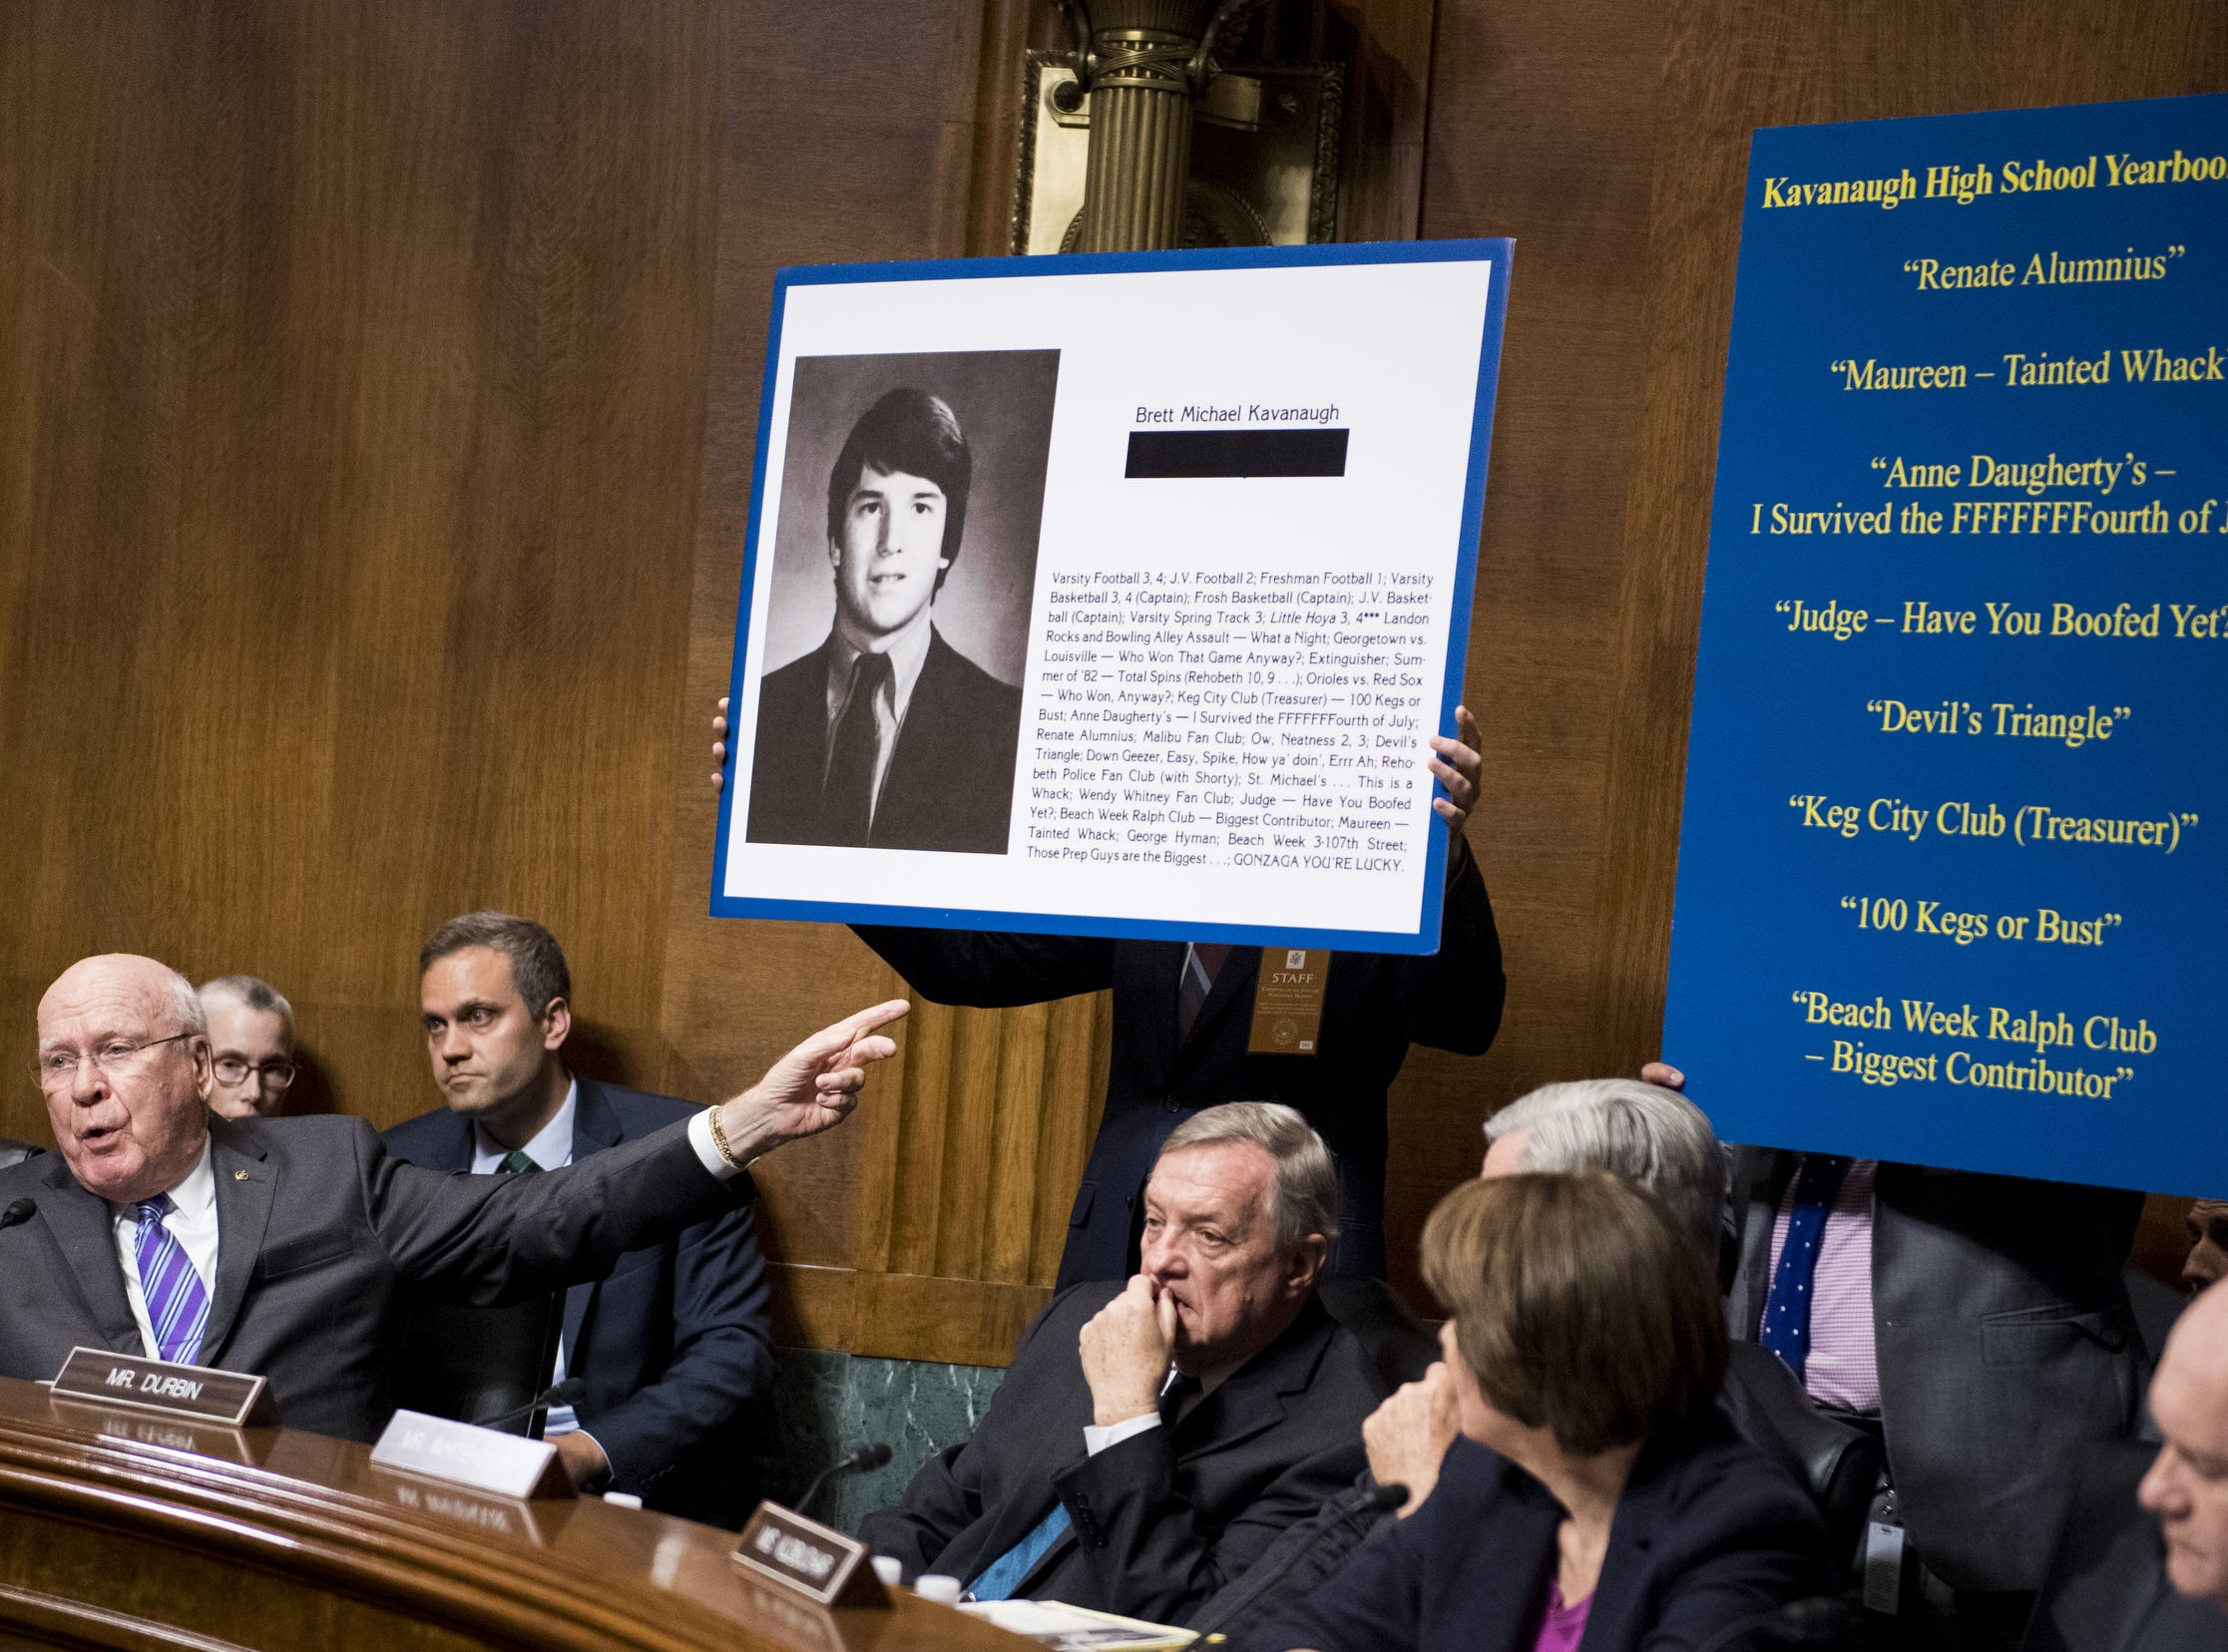 Sen. Patrick Leahy, D-Vt., points to posters as he questions Judge Brett Kavanaugh during the Senate Judiciary Committee hearing on his nomination be an associate justice of the Supreme Court.